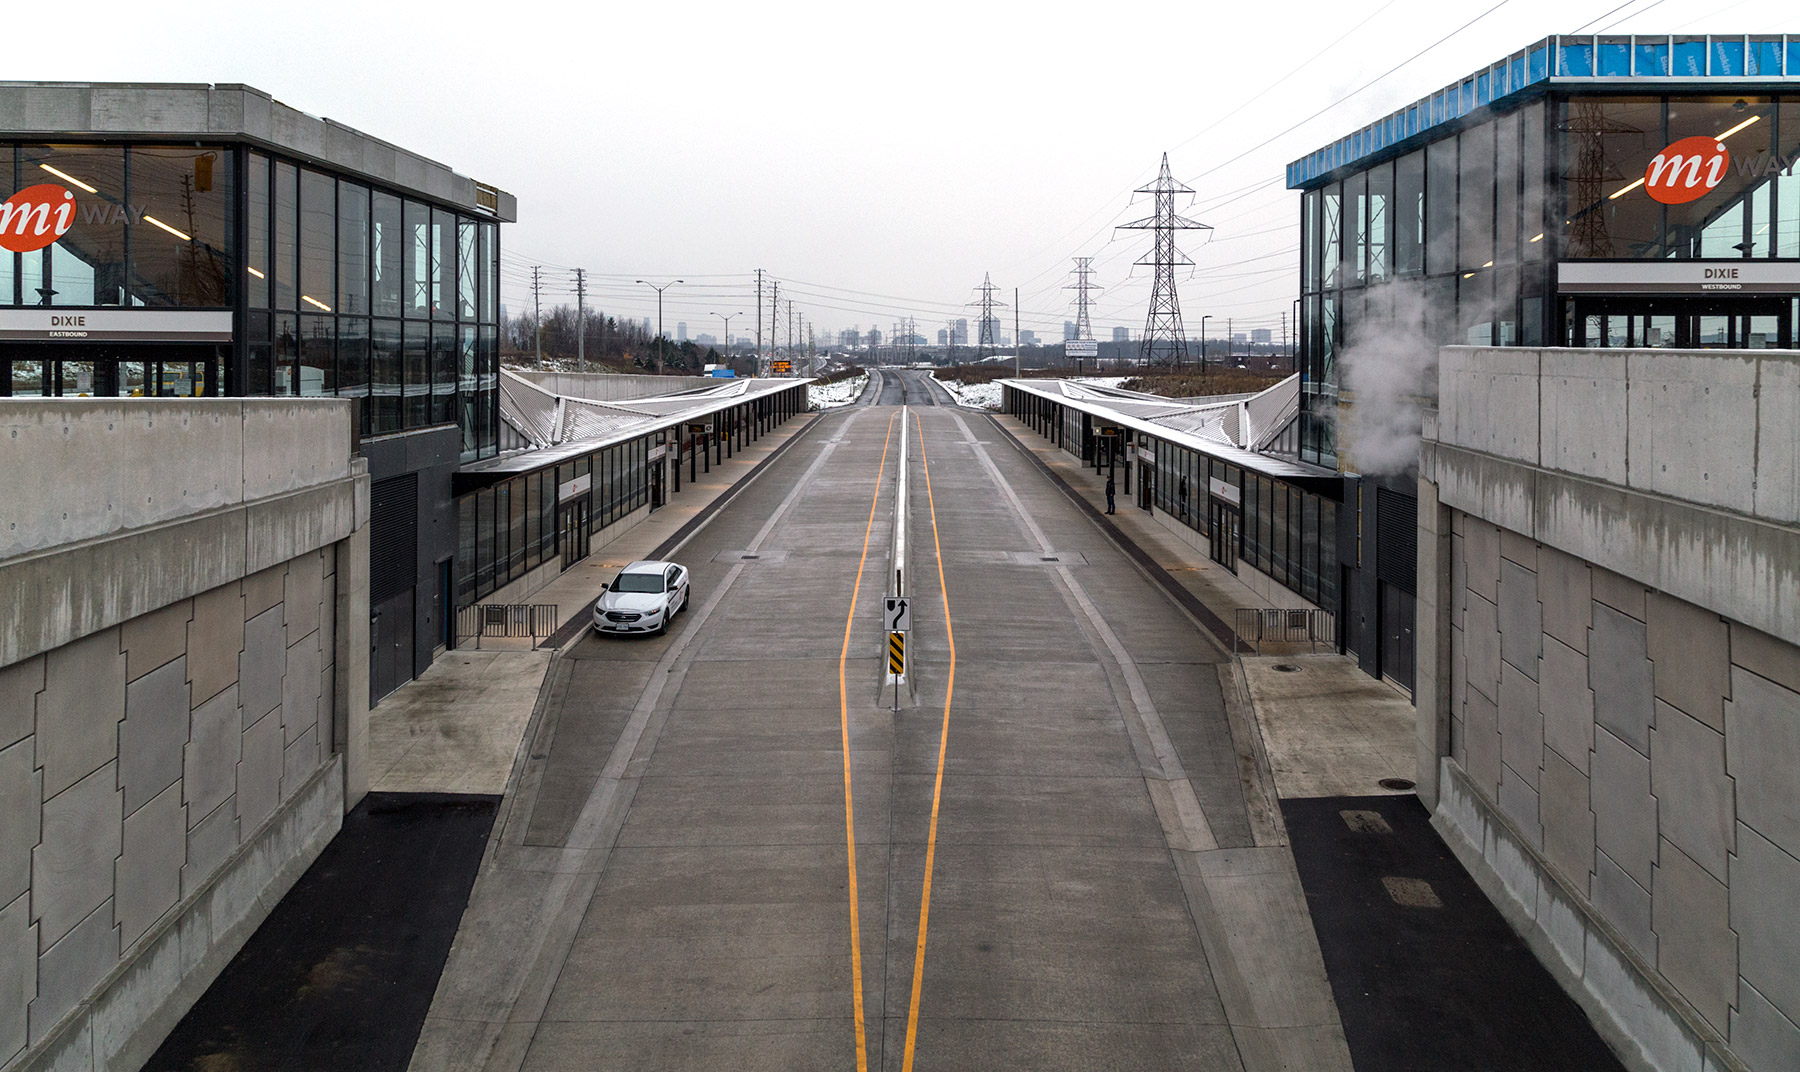 20141117. Mississauga's Transitway (bus rapid transit system) an